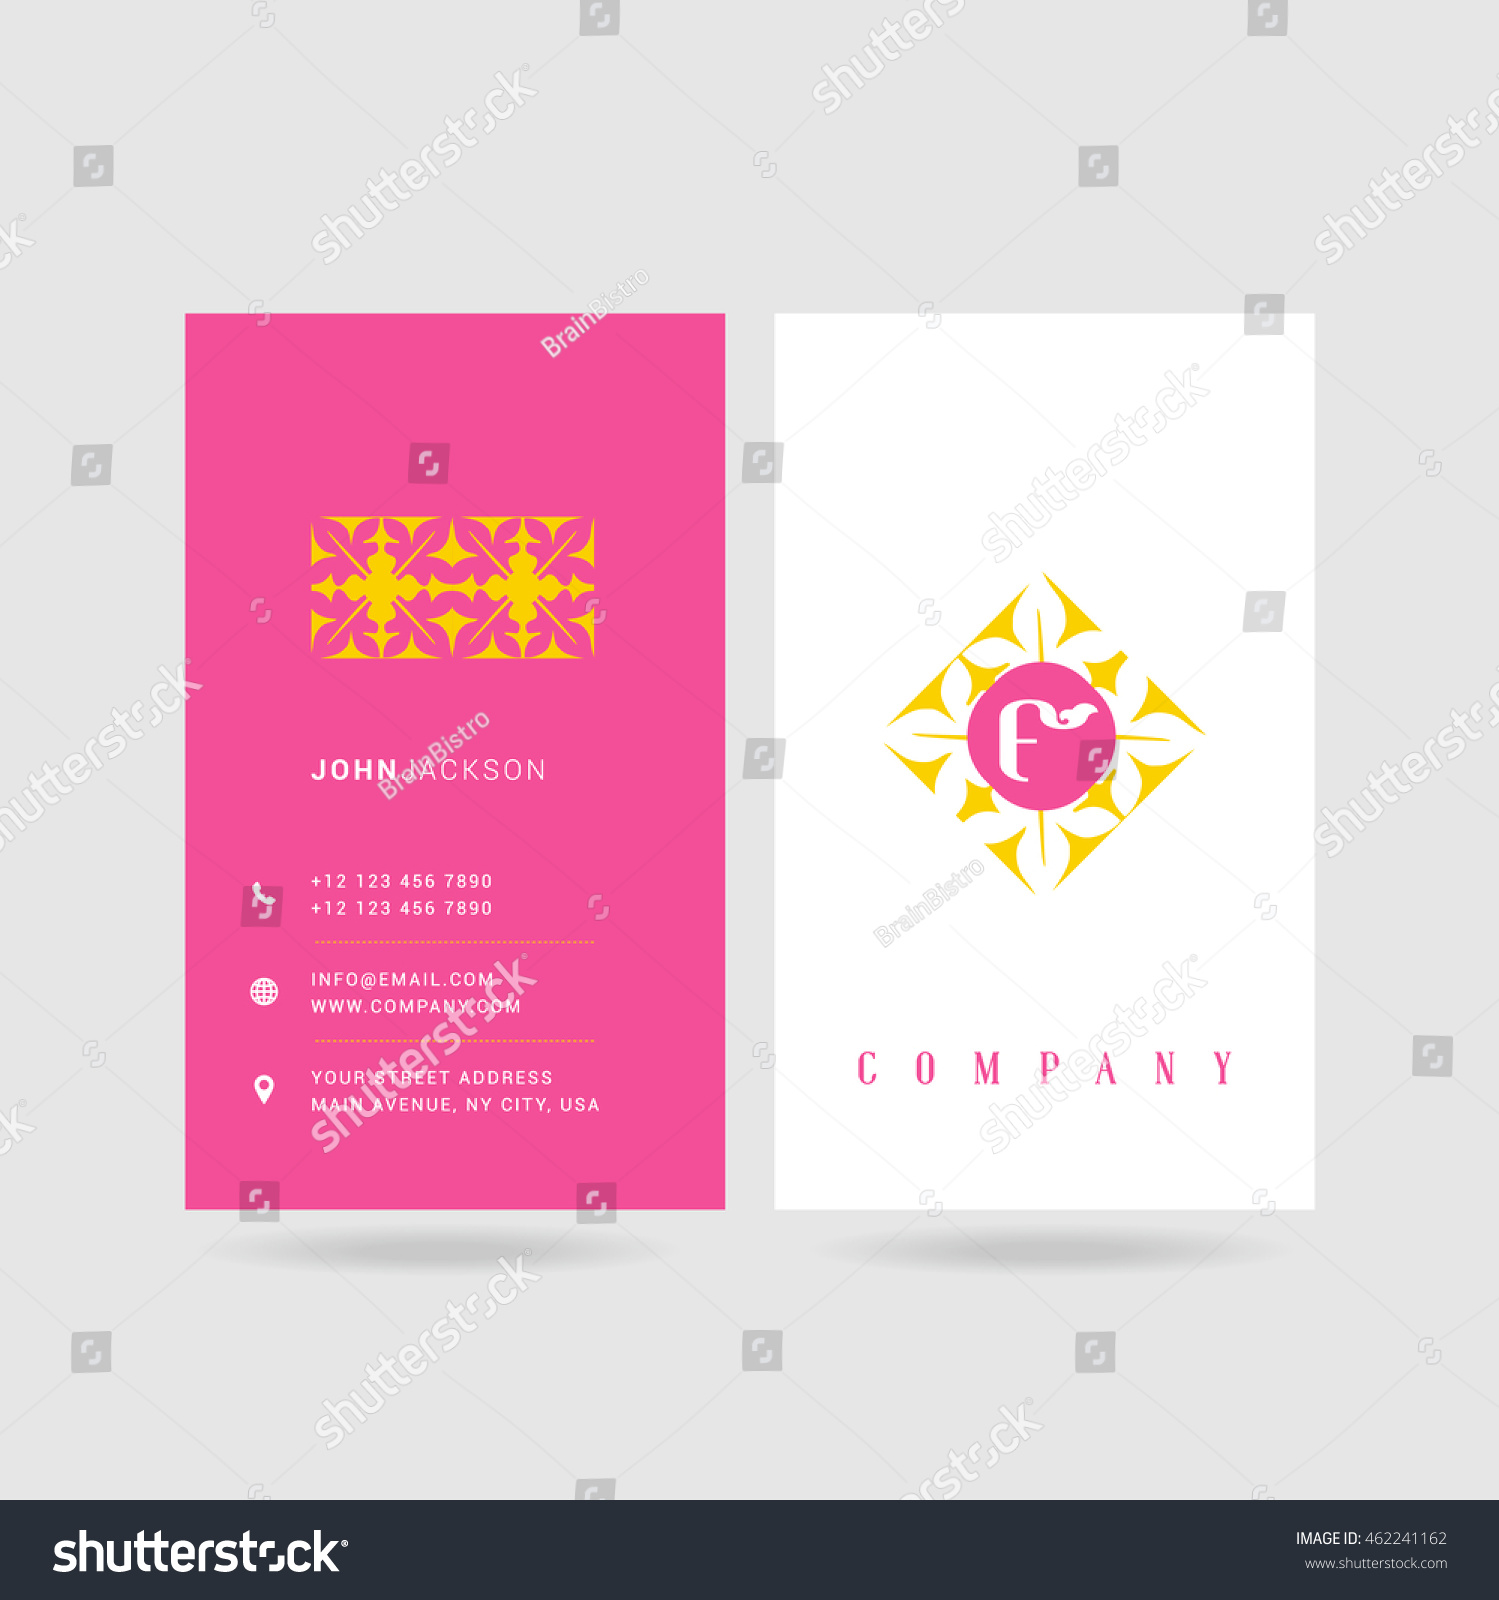 Instagram icon for business card gallery free business cards email icons for business cards electrical light symbol electric f letter logo floral logo icon stock magicingreecefo Images